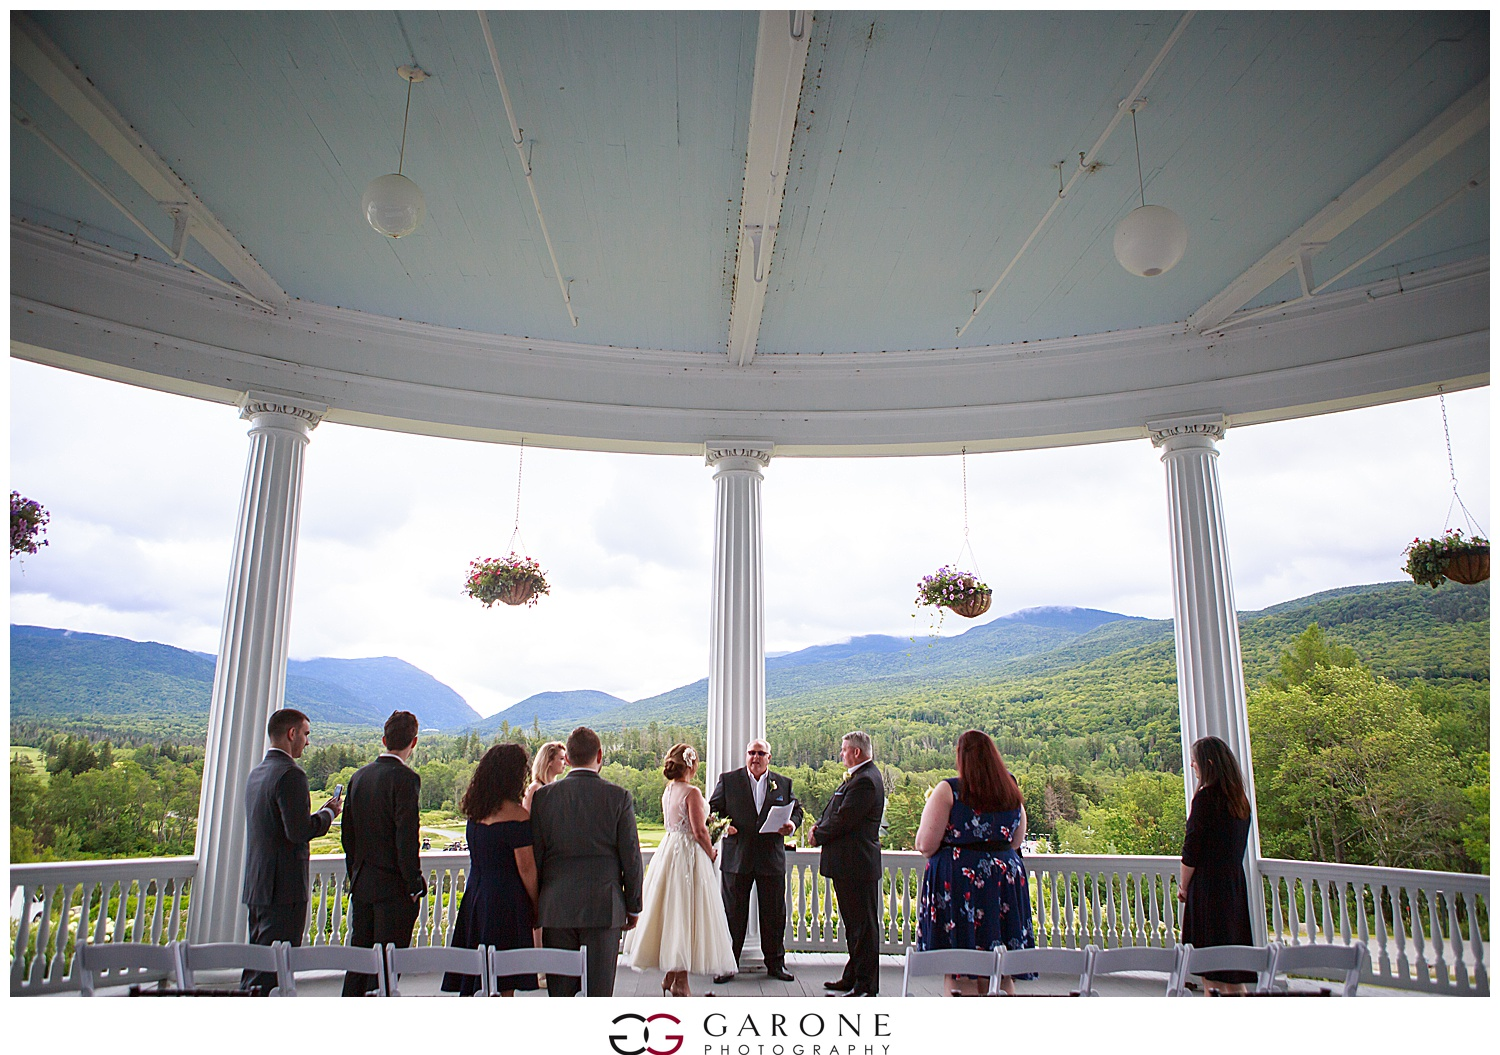 Brian_Kelly_Omni_Mount_Washington_Wedding_Garone_Photography_Wedding_NH_Photography_0008.jpg